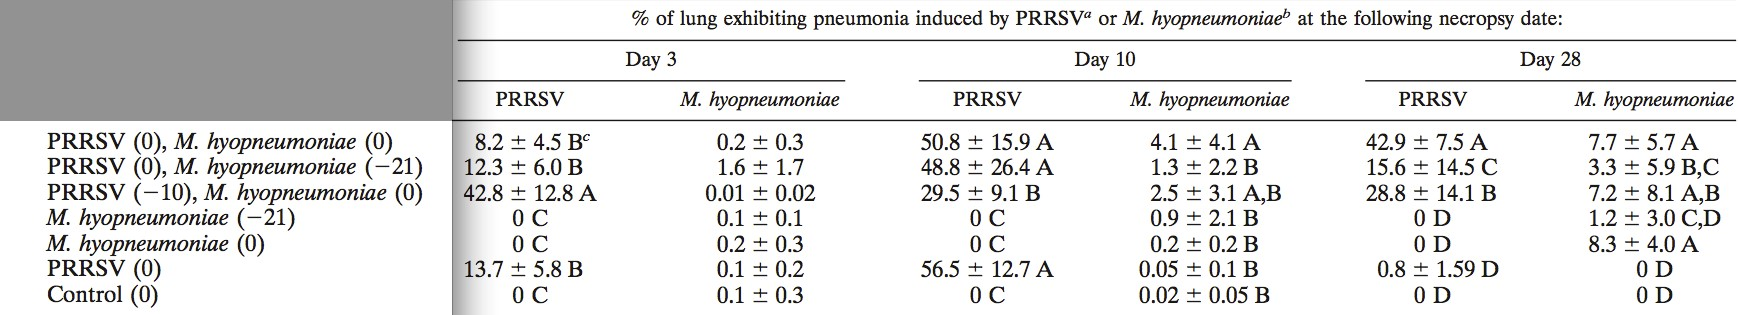 Macroscopic pneumonia lesions